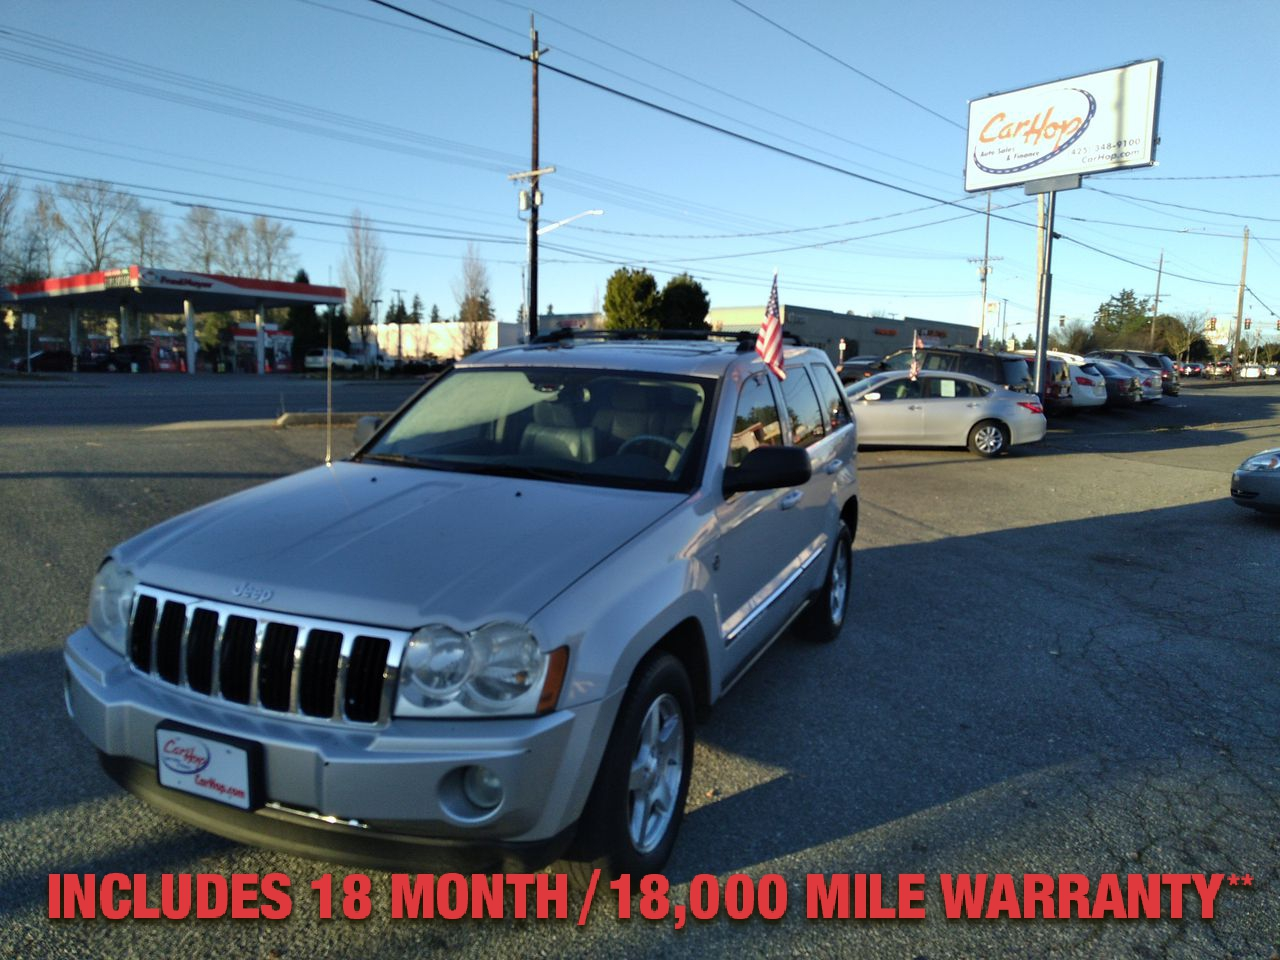 Pre-Owned 2006 JEEP GRAND CHEROKEE Limited Sp